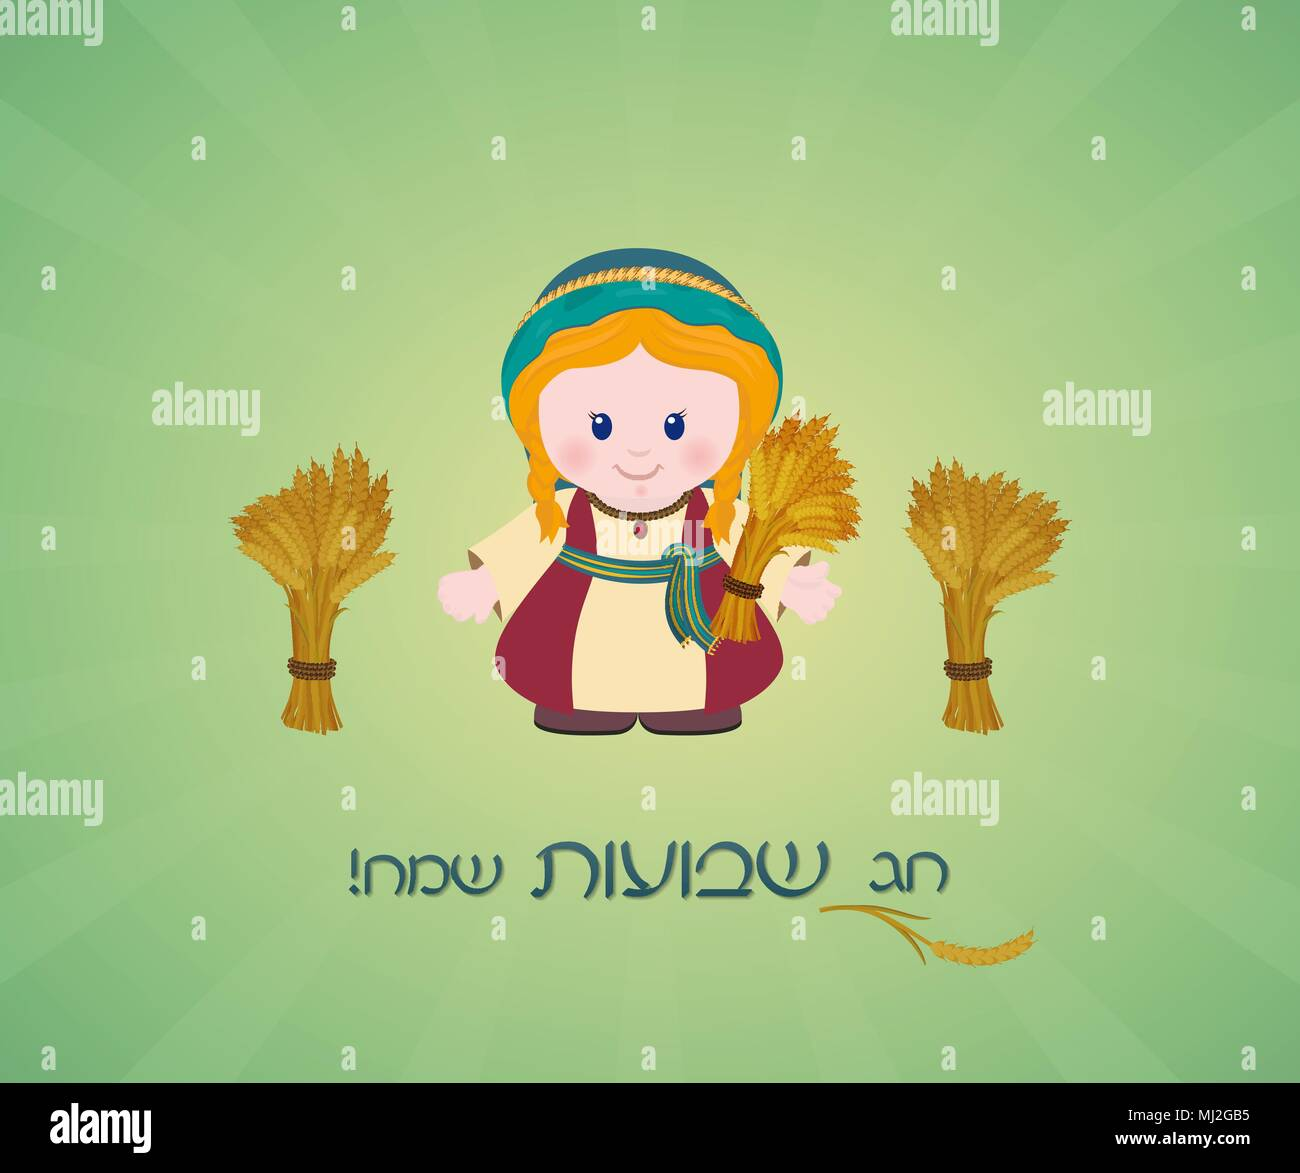 Jewish Holiday Greeting Card Ruth With Sheaf Of Wheat And Greeting